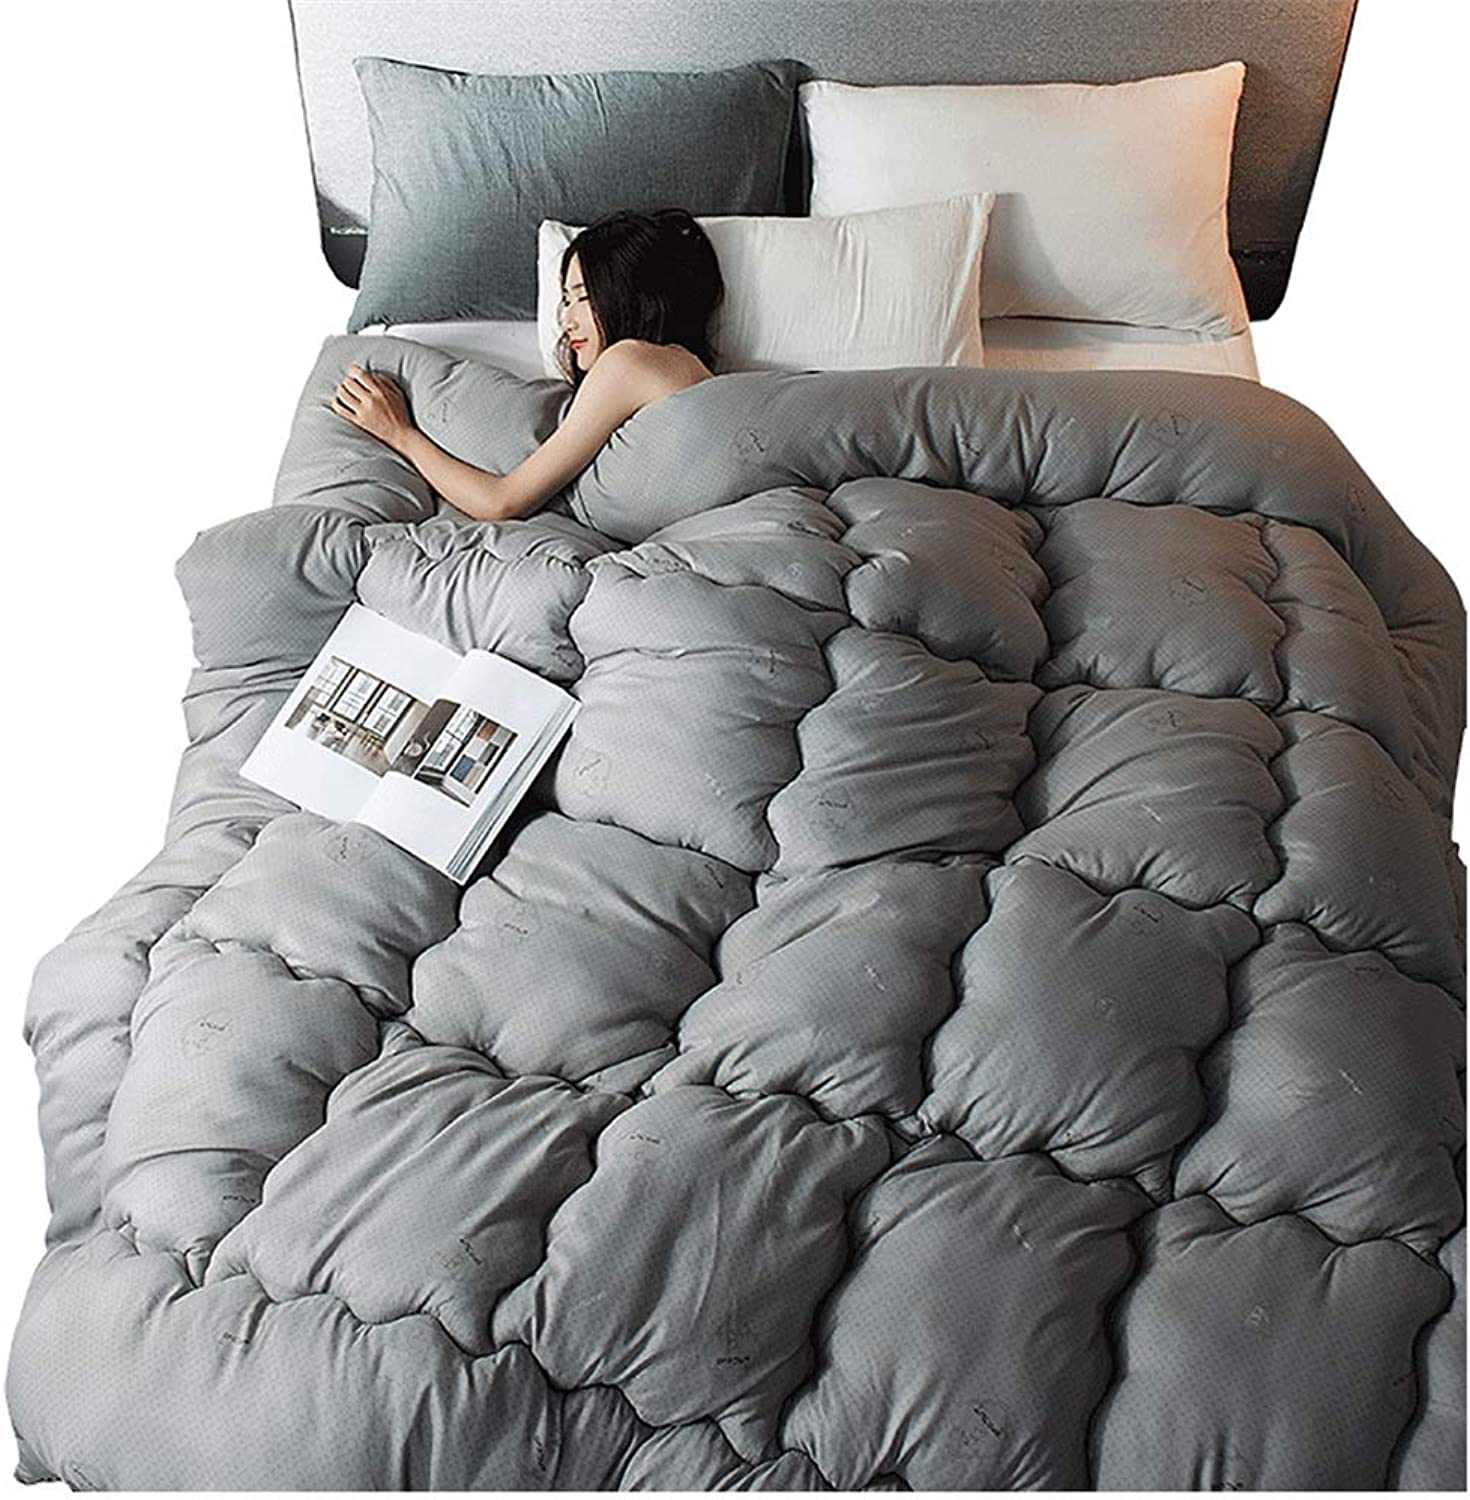 Quilt Thicken Warm and Soft for All Season Four Seasons Double All-Season Quilted Comforte Rhypoallergenic 100% Cotton Fabrics Quilted Comforter with Corner Tabs (Size   150cmx200cm2.5kg)